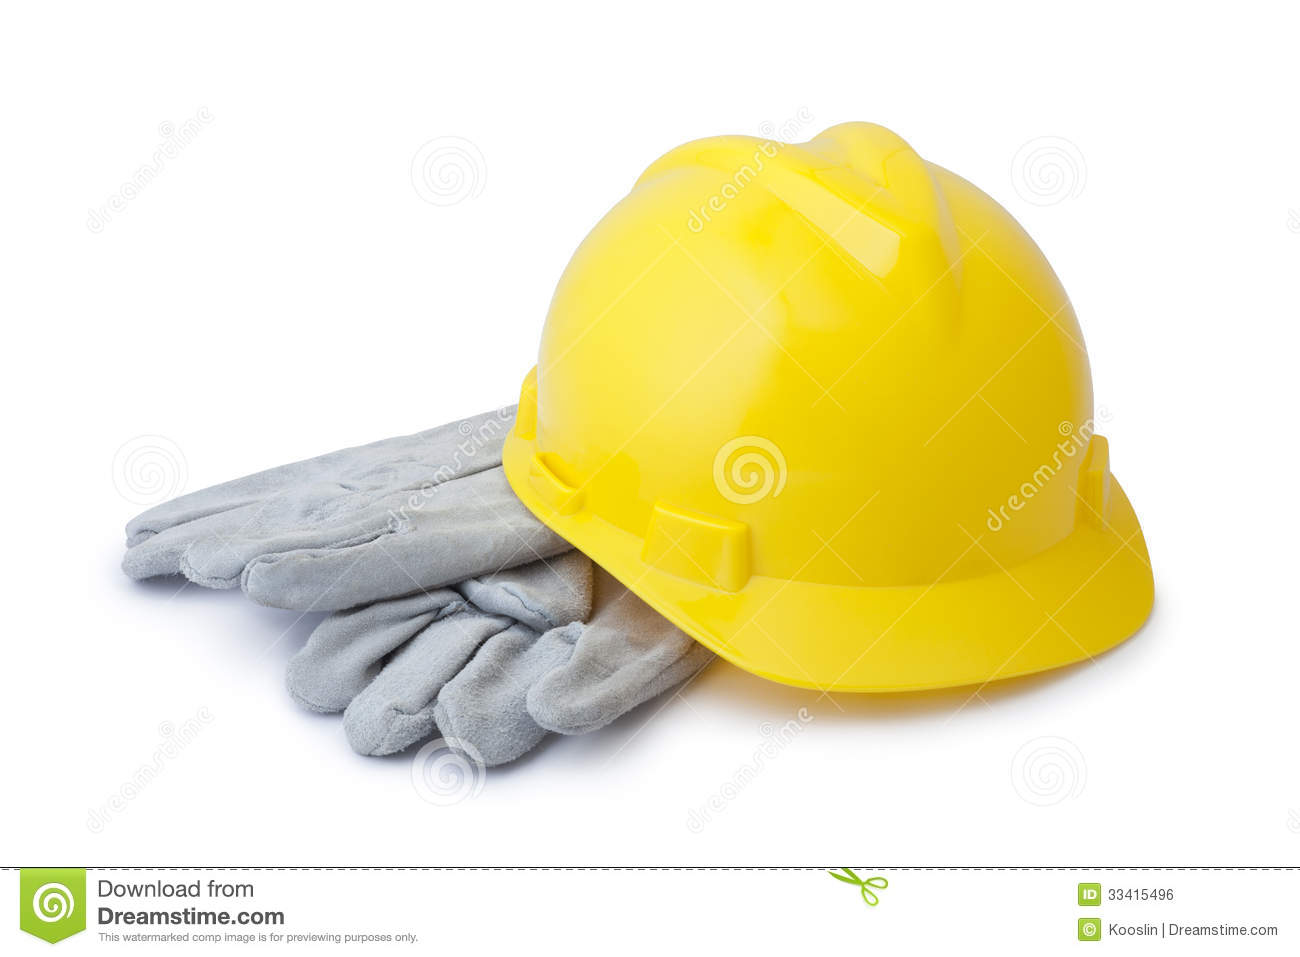 Yellow Safety Helmet And Gloves Royalty Free Stock Image - Image ...